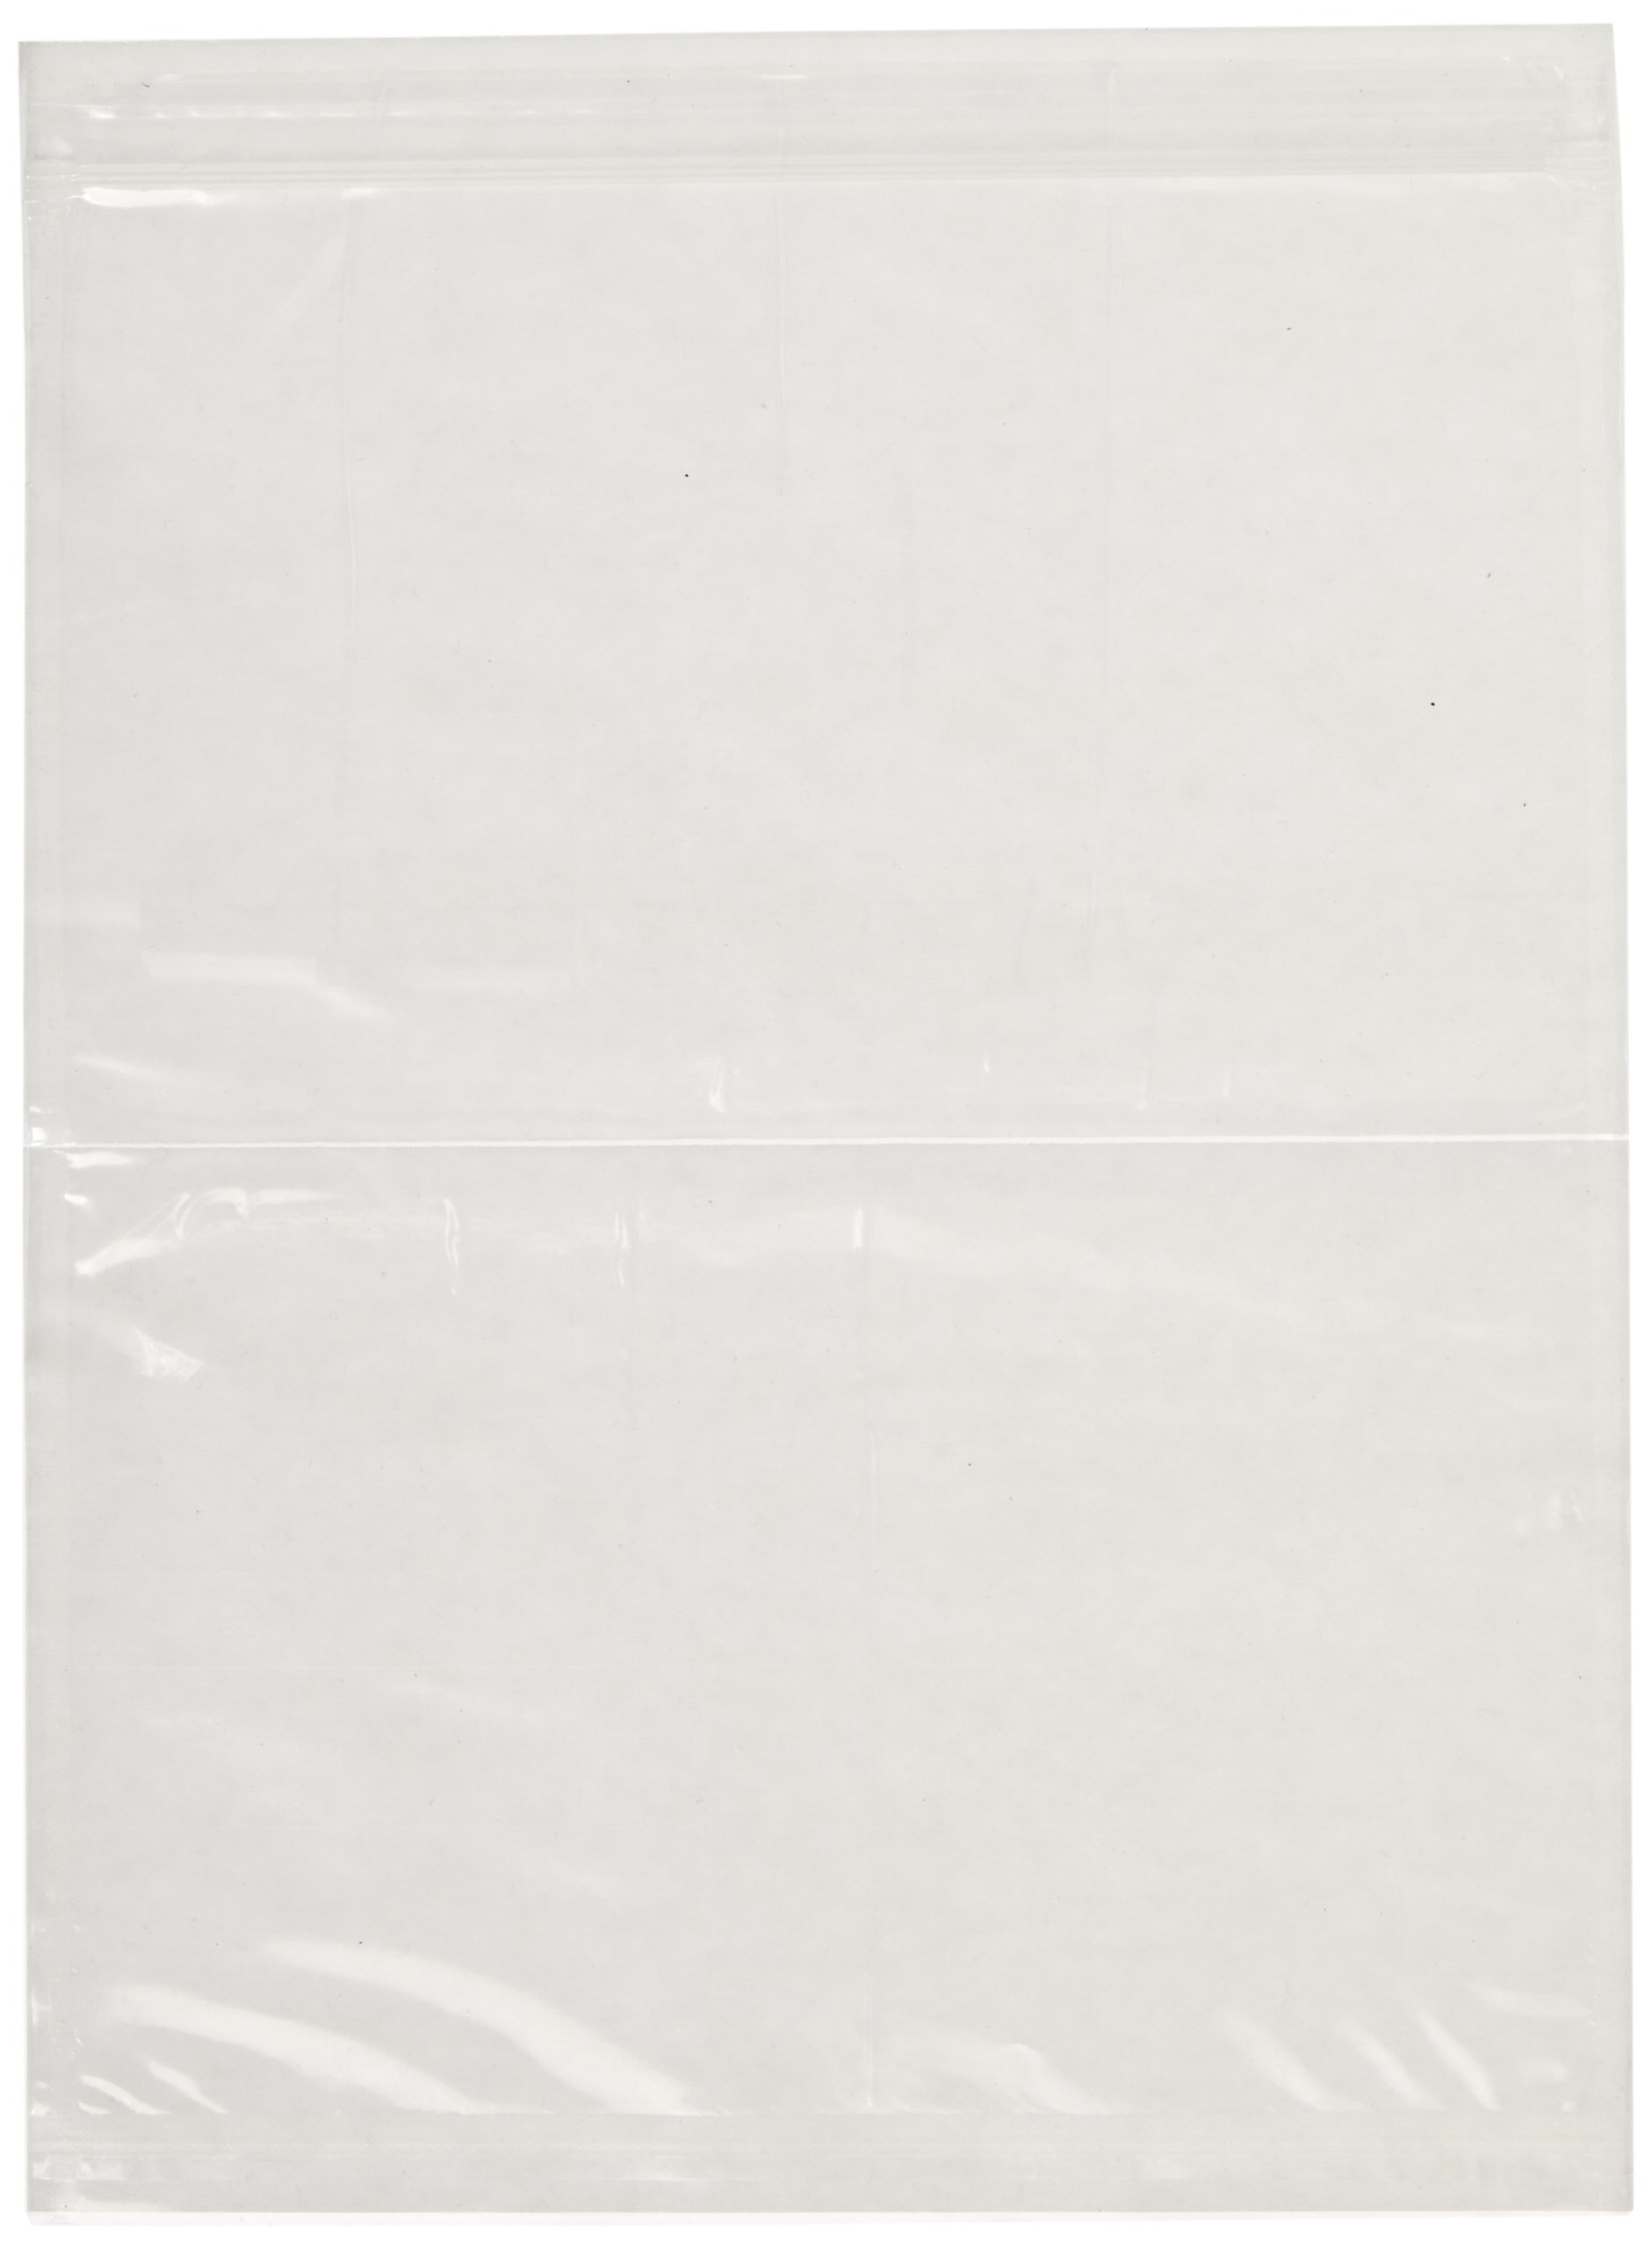 3M Non-Printed Zipper Closure Packing List Envelope NPZ-L Clear, 8-1/2 in x 11-1/2 in (Box of 500) by 3M